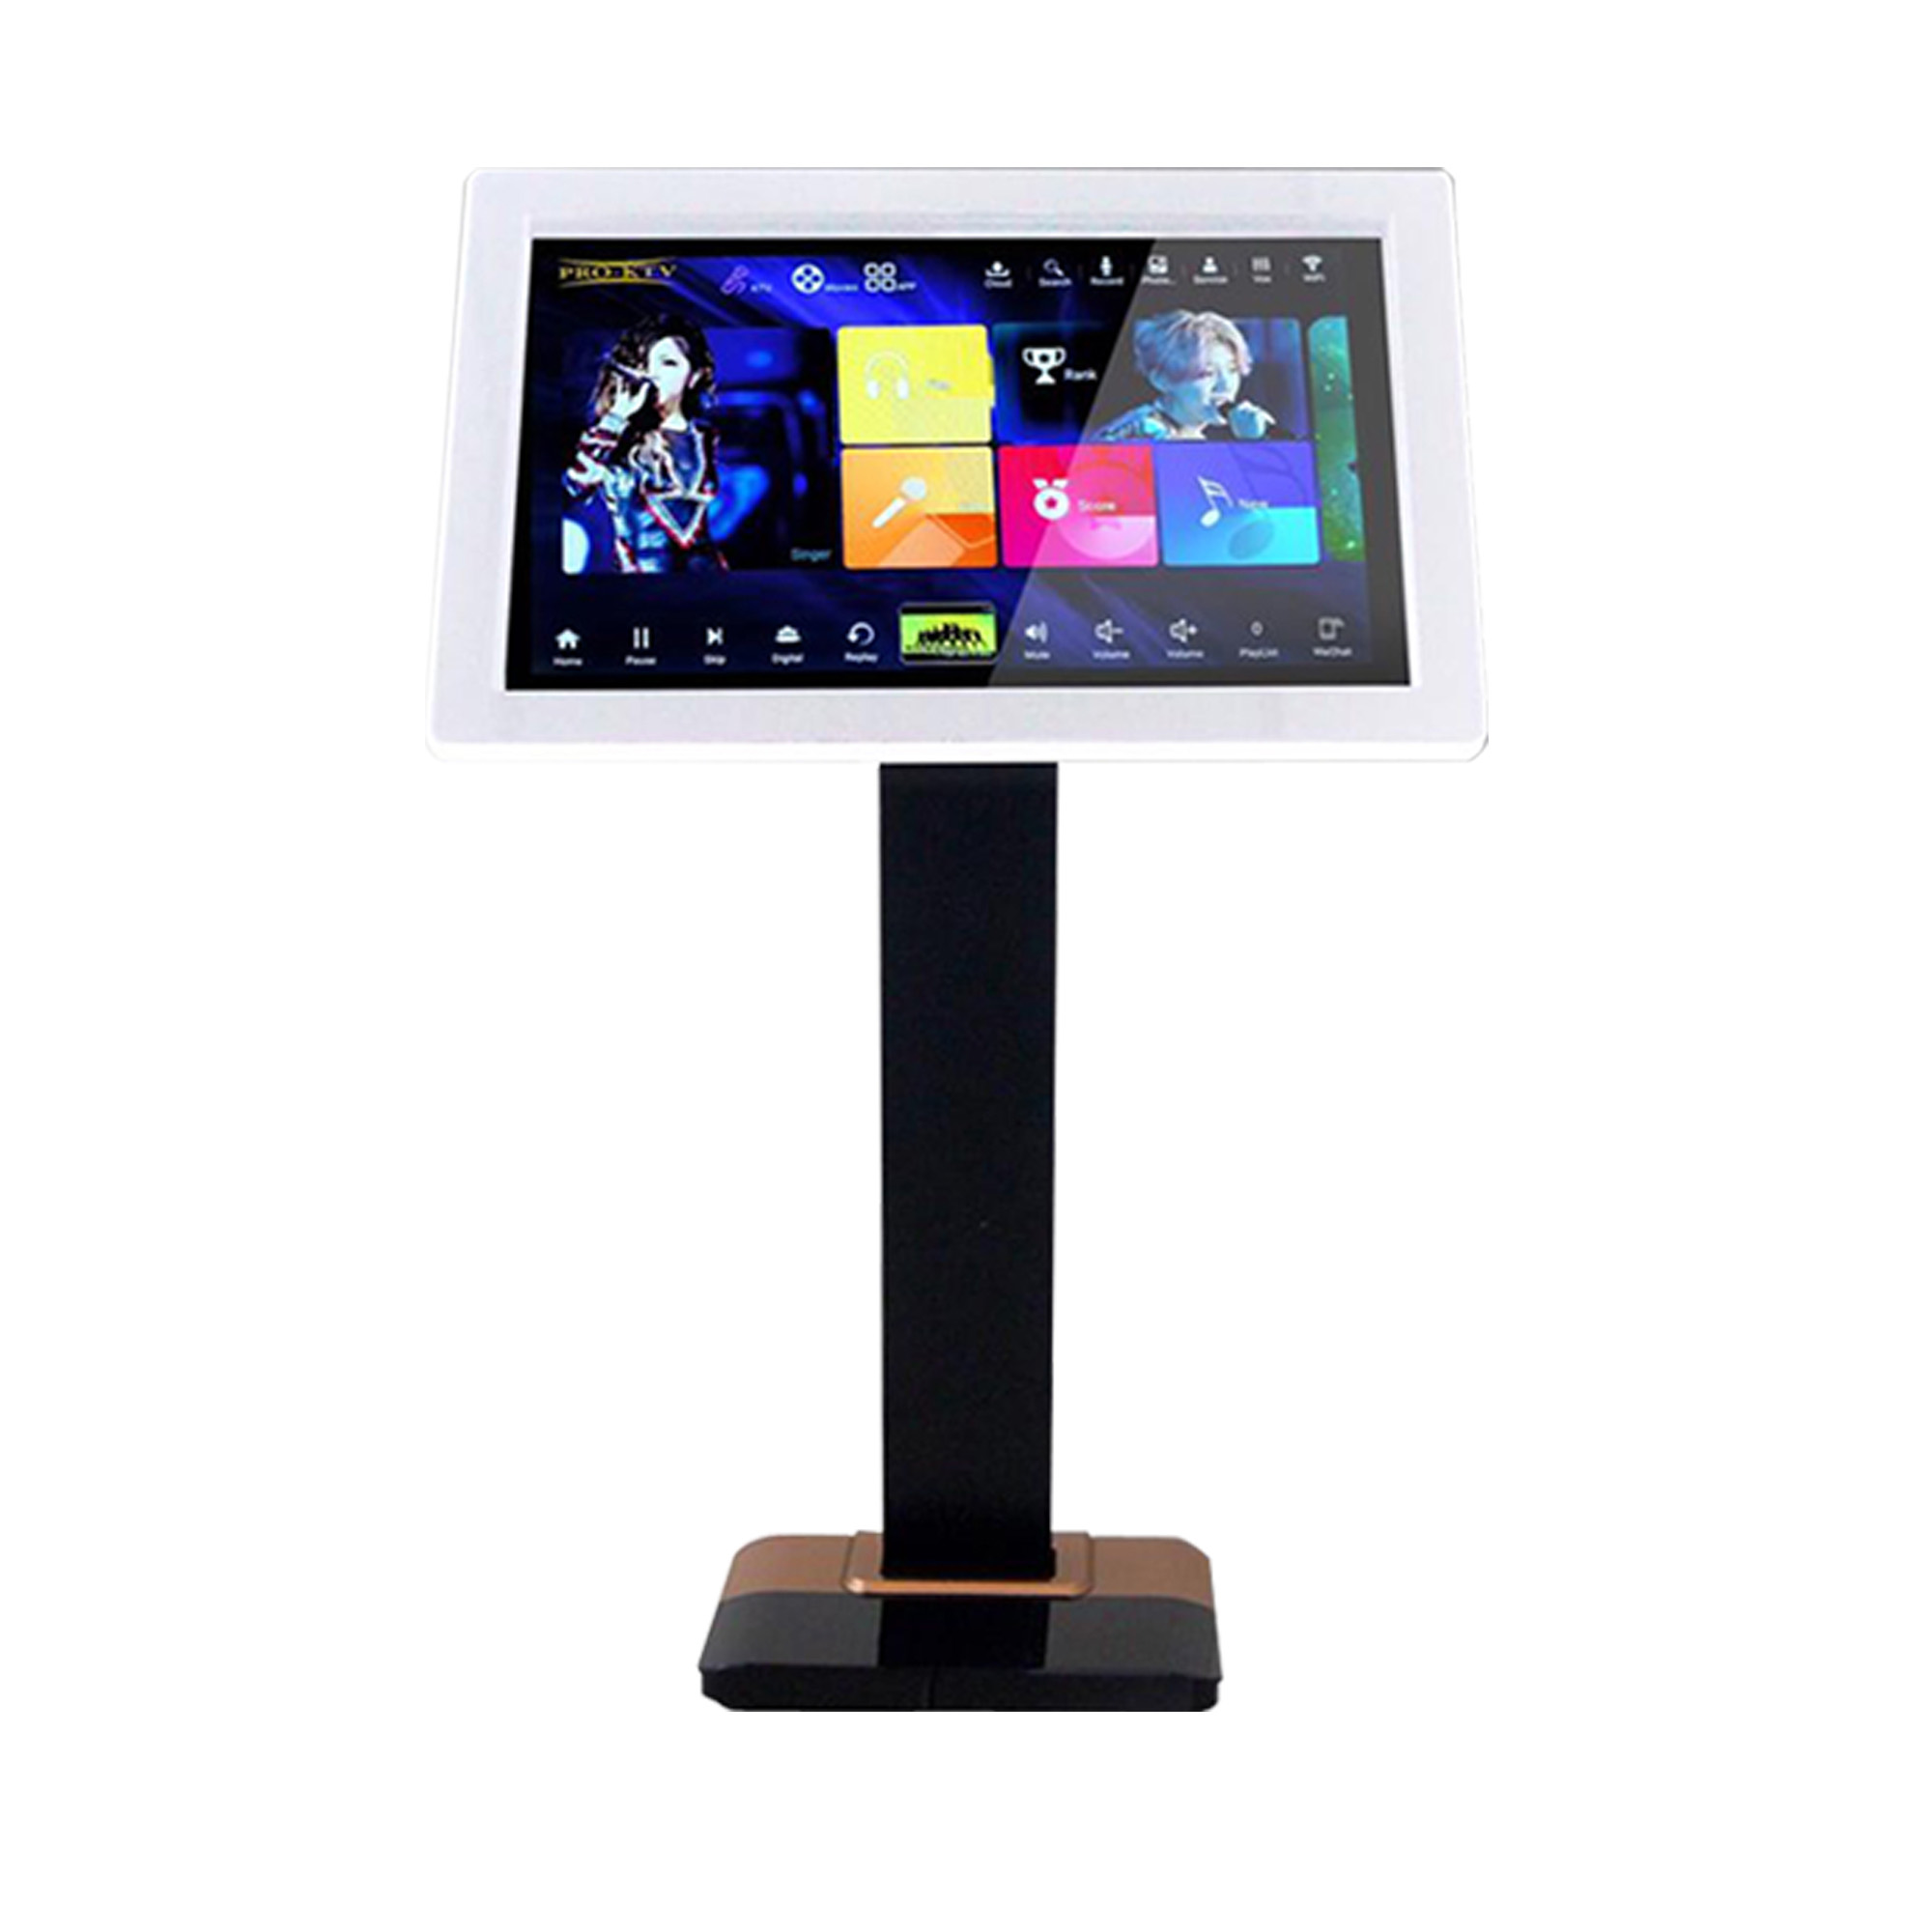 """PRO KTV 21.5"""" All in One Karaoke On Demand Player with Floor Stand (4TB)"""